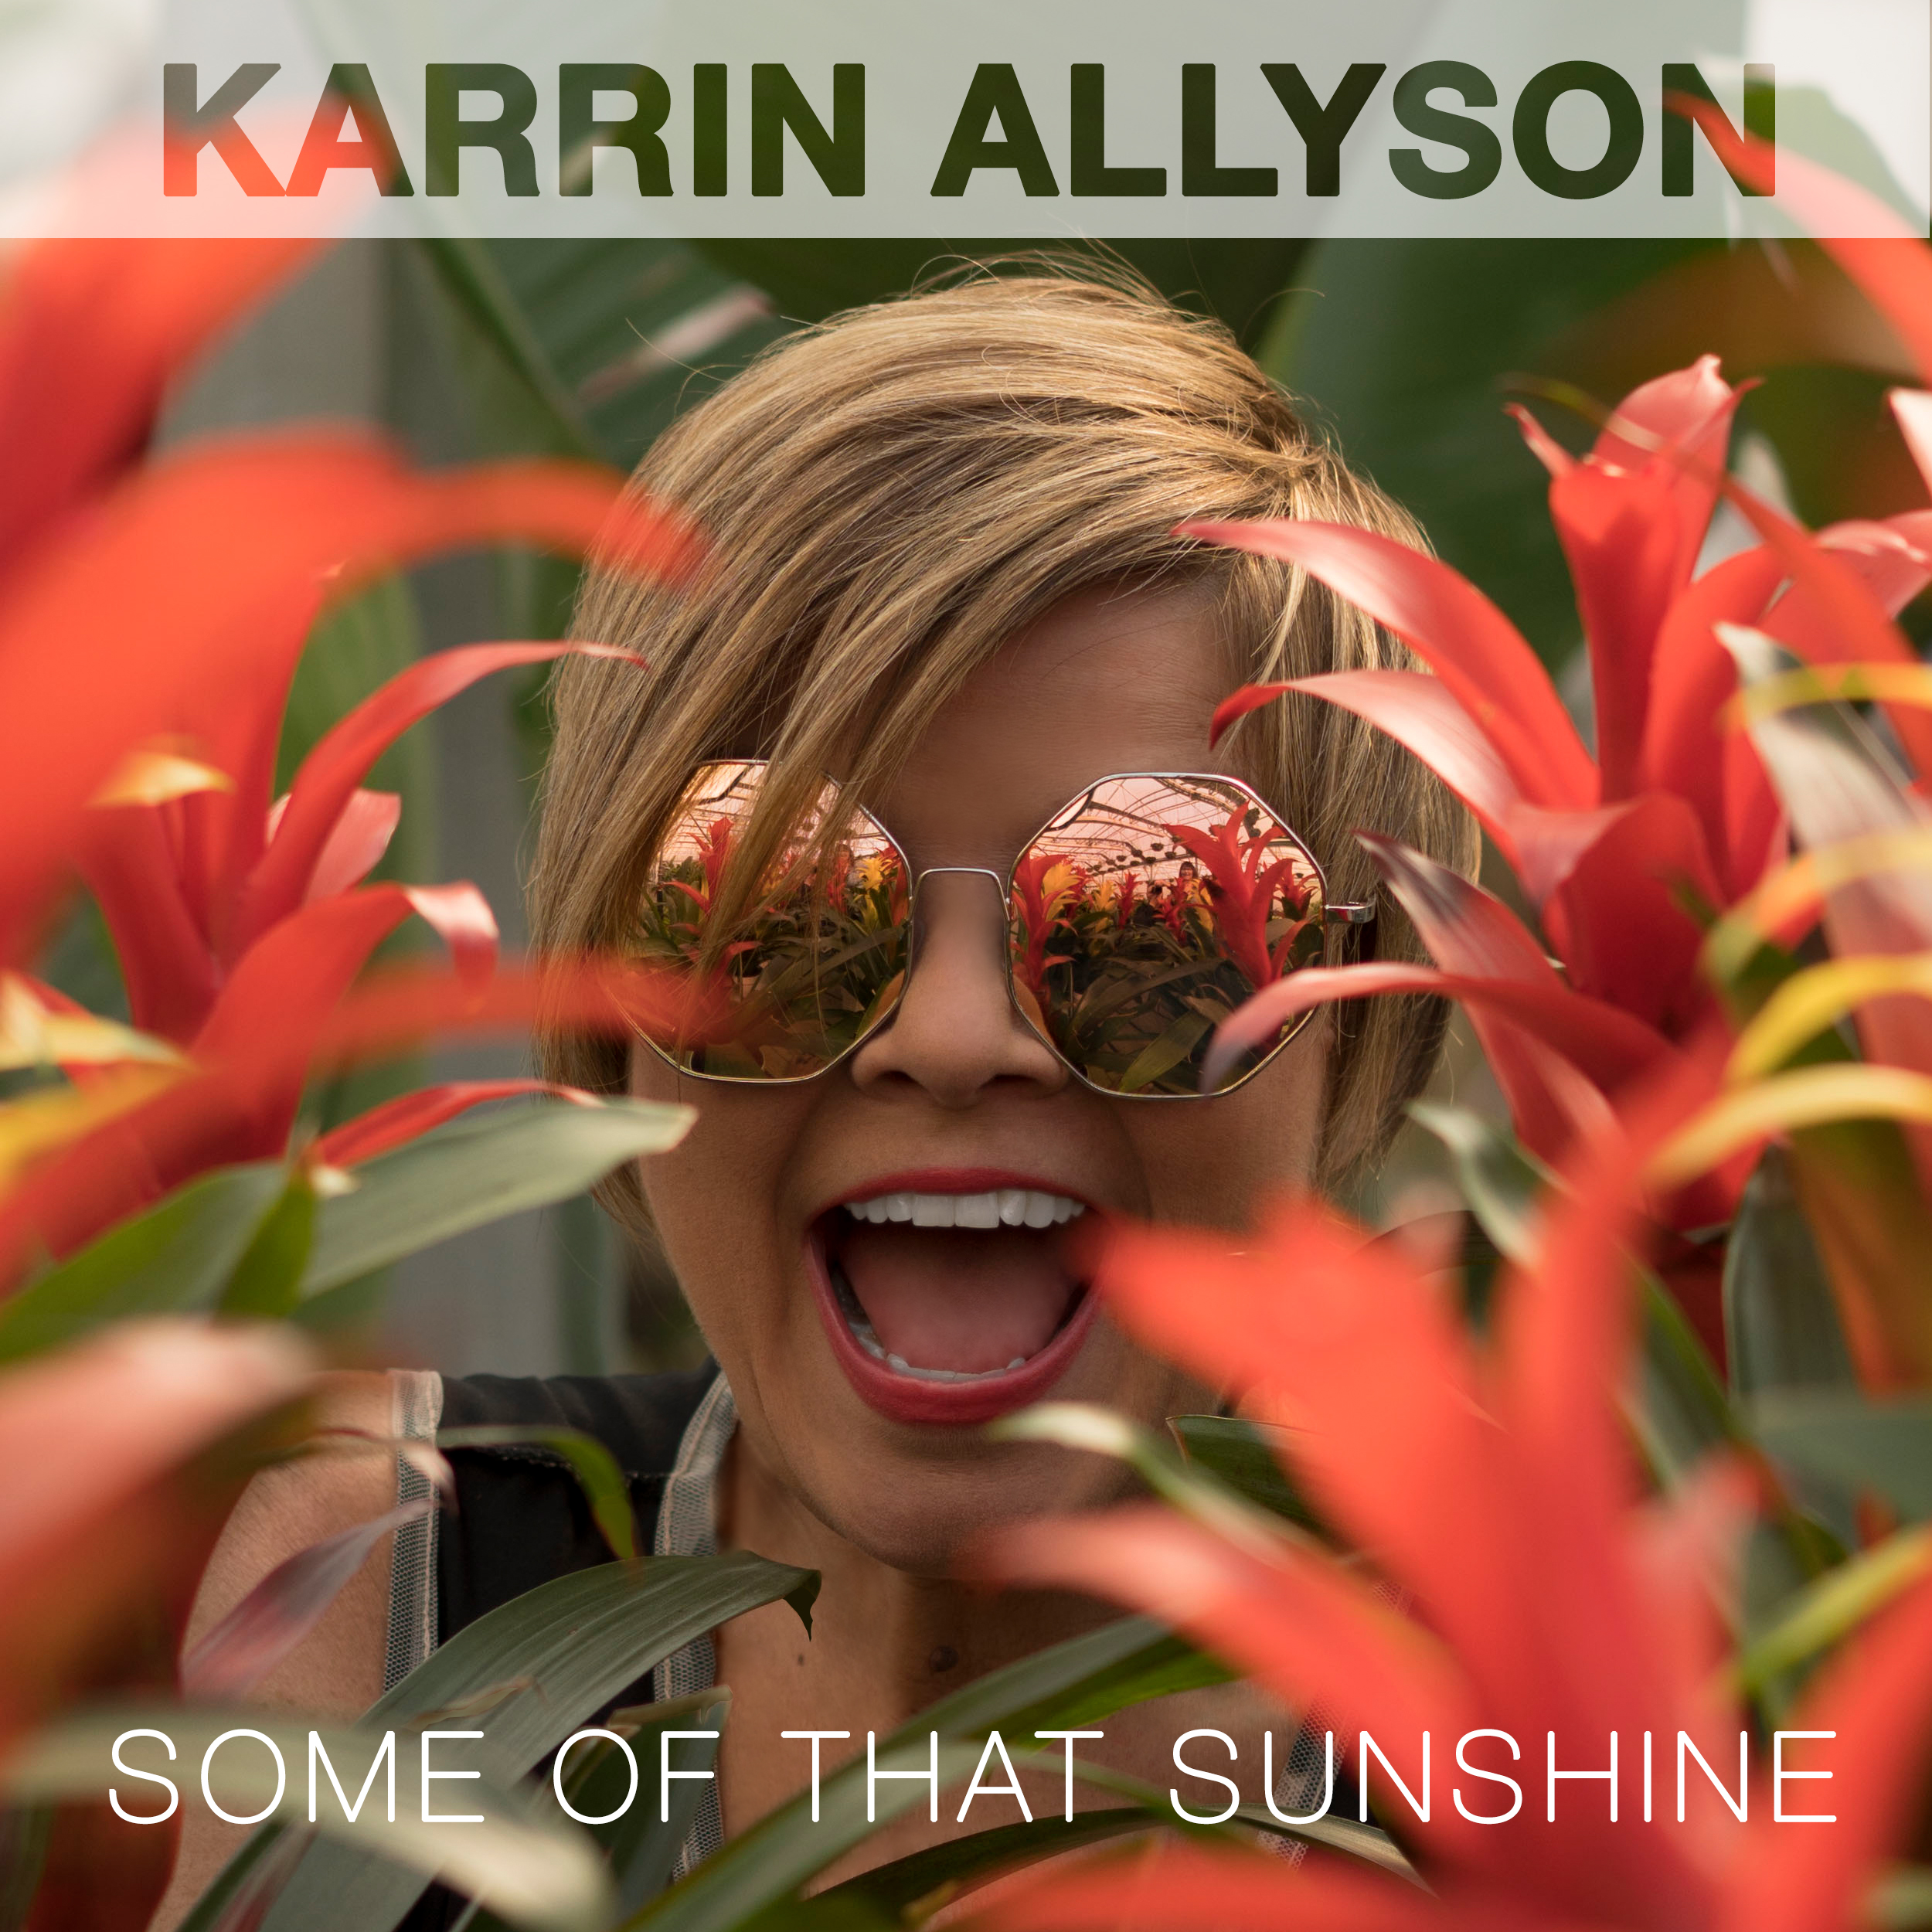 karrin allyson – five-time grammy nominee's official website